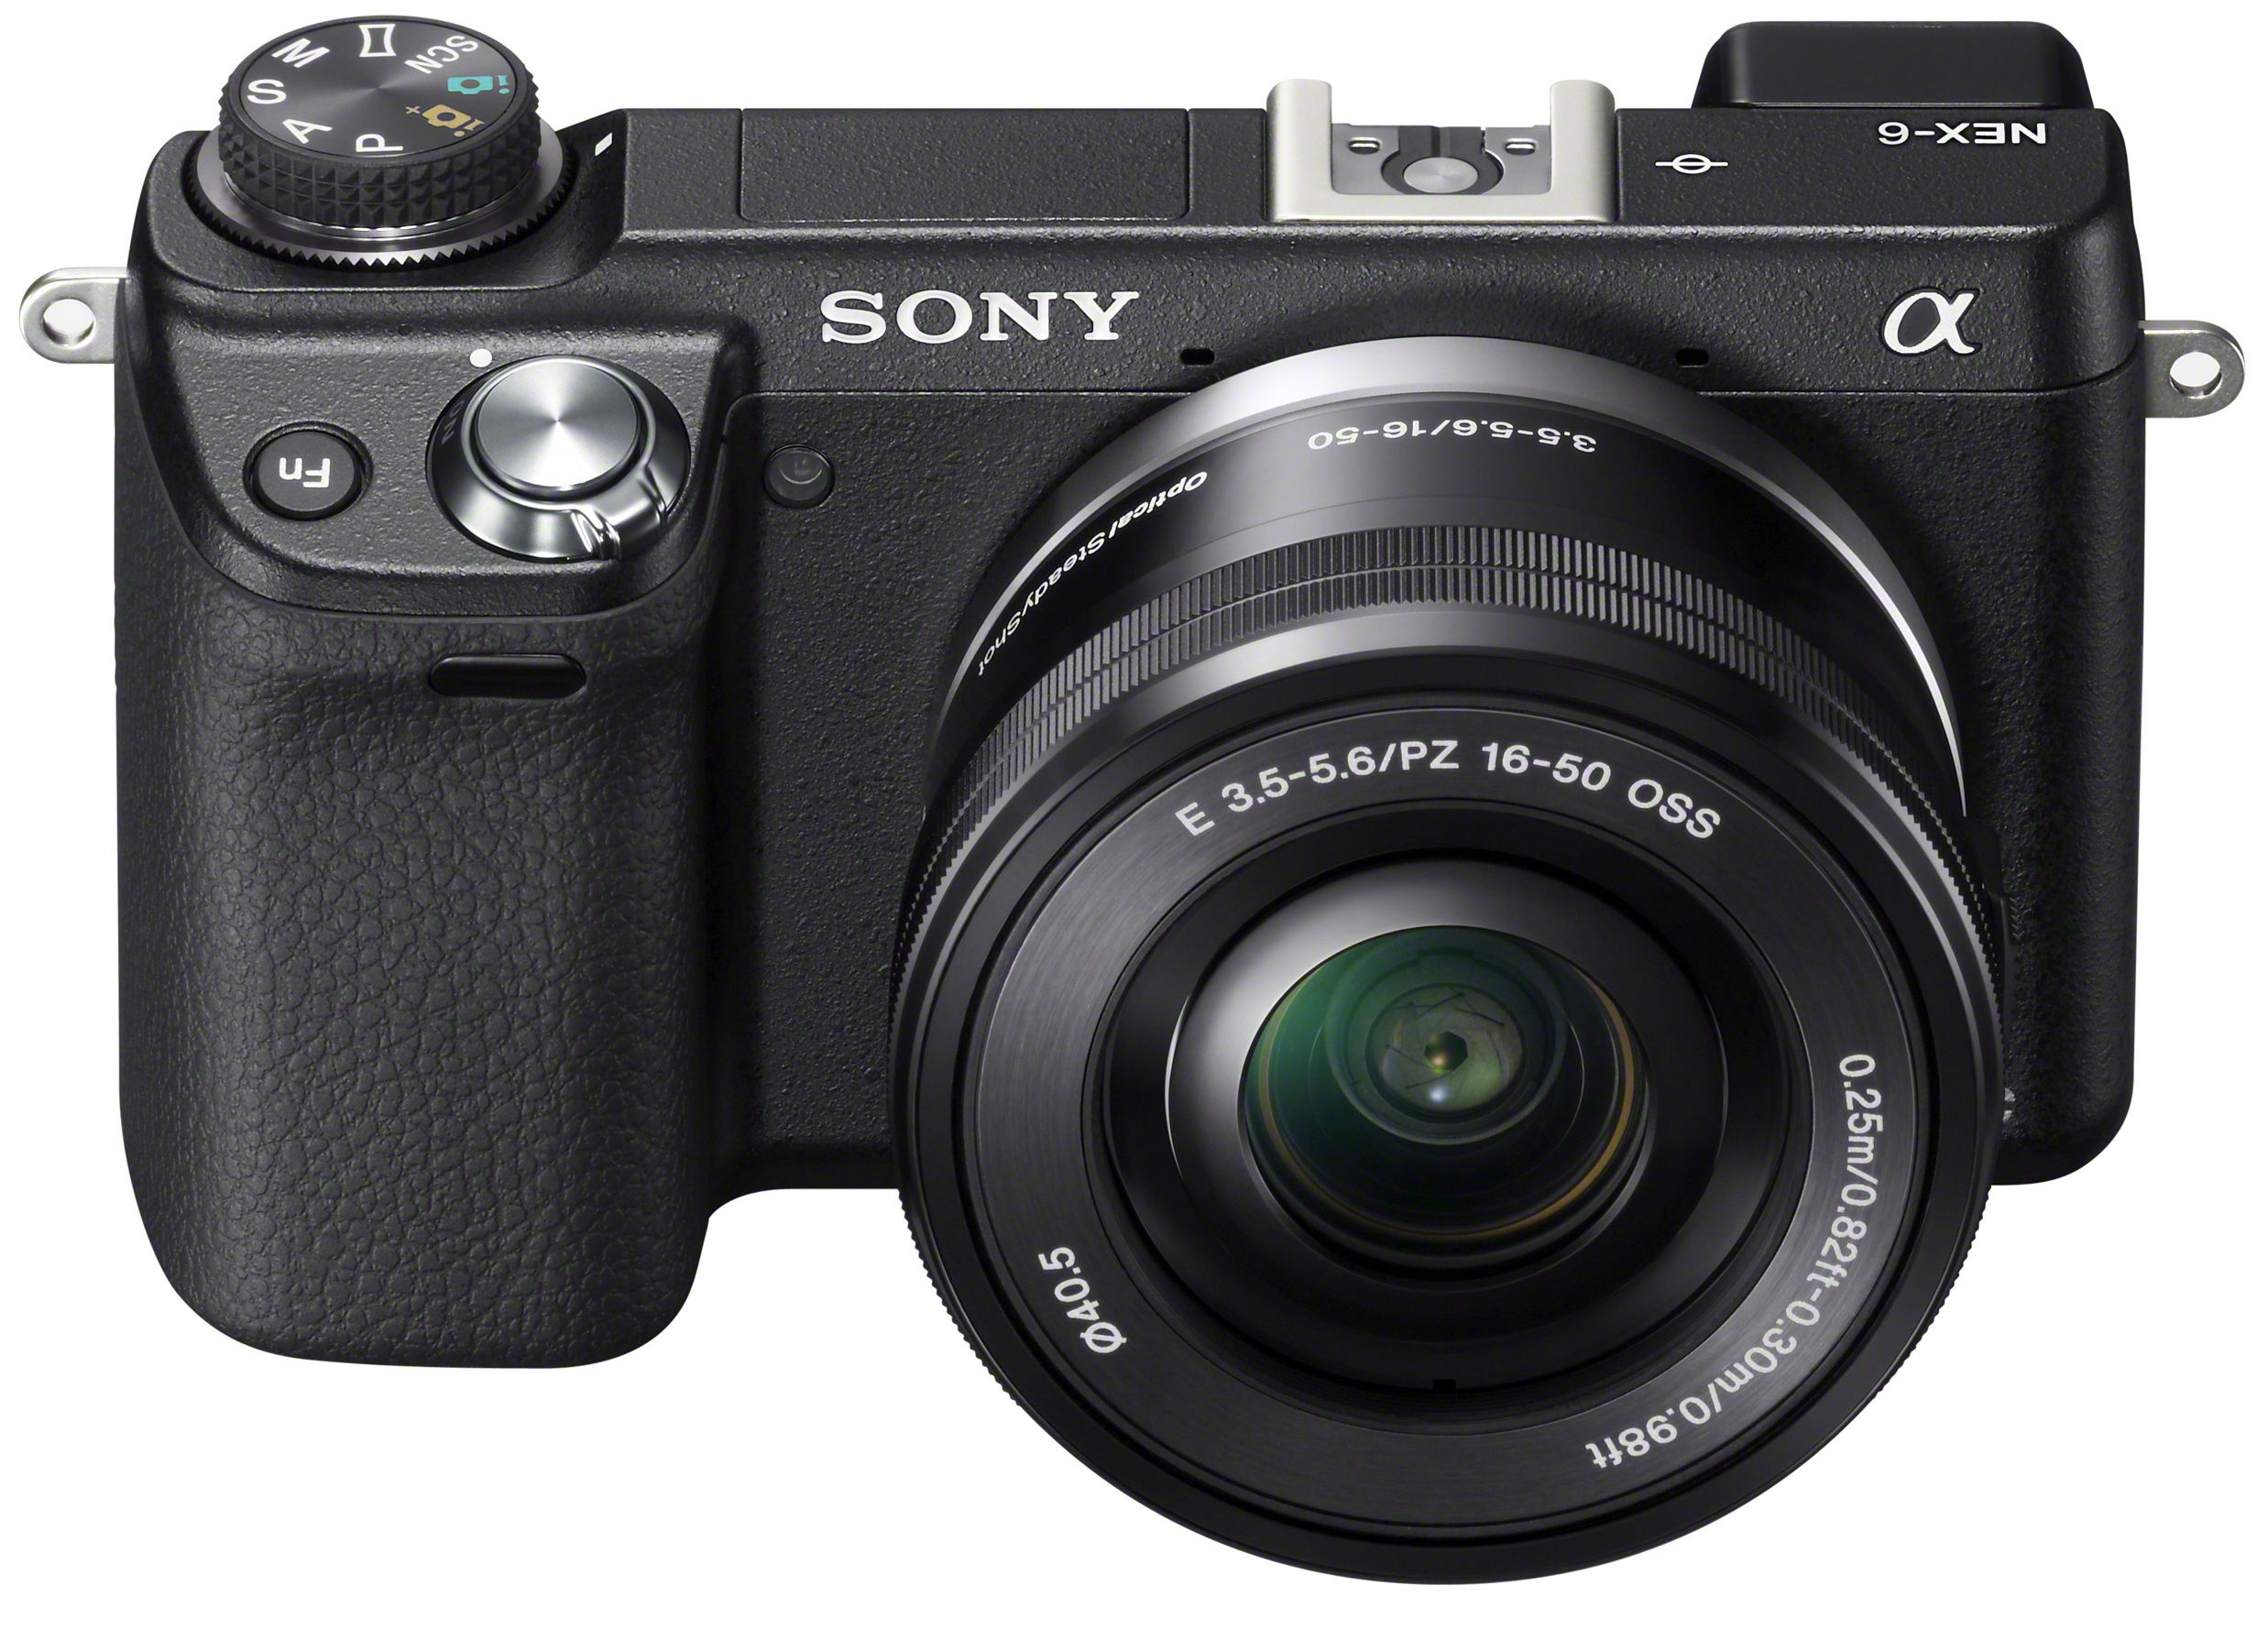 Sony Nex-6 new mirrorless camera